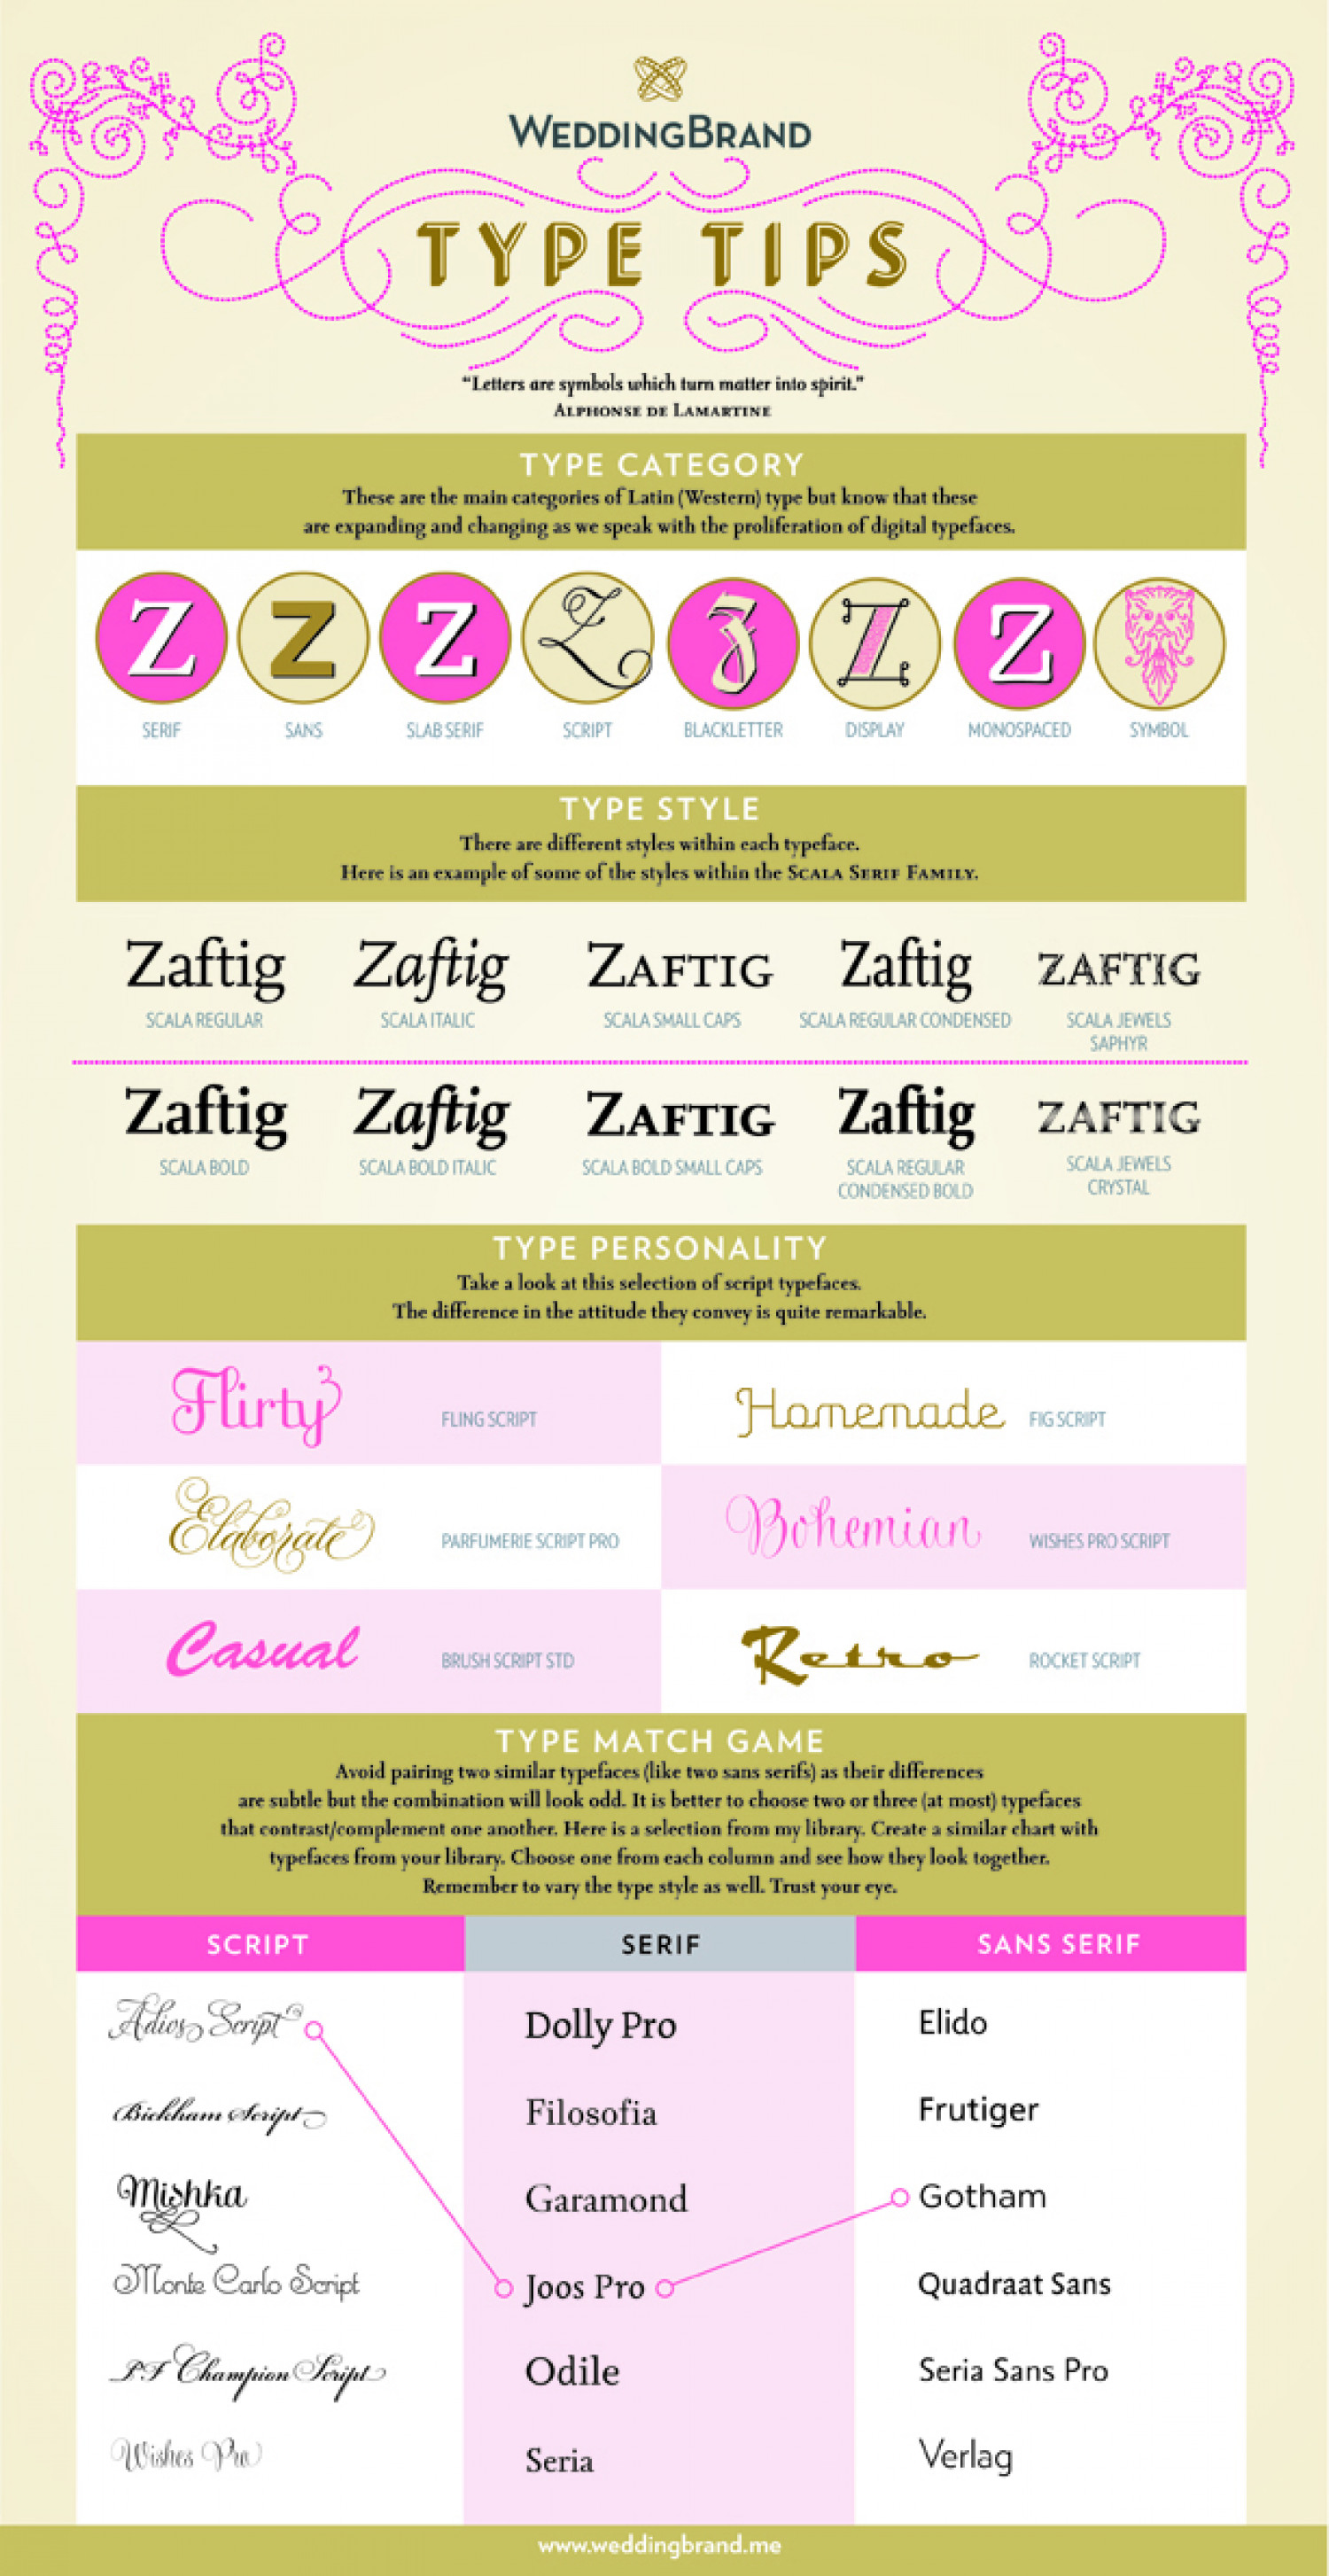 WeddingBrand Type Tips Infographic